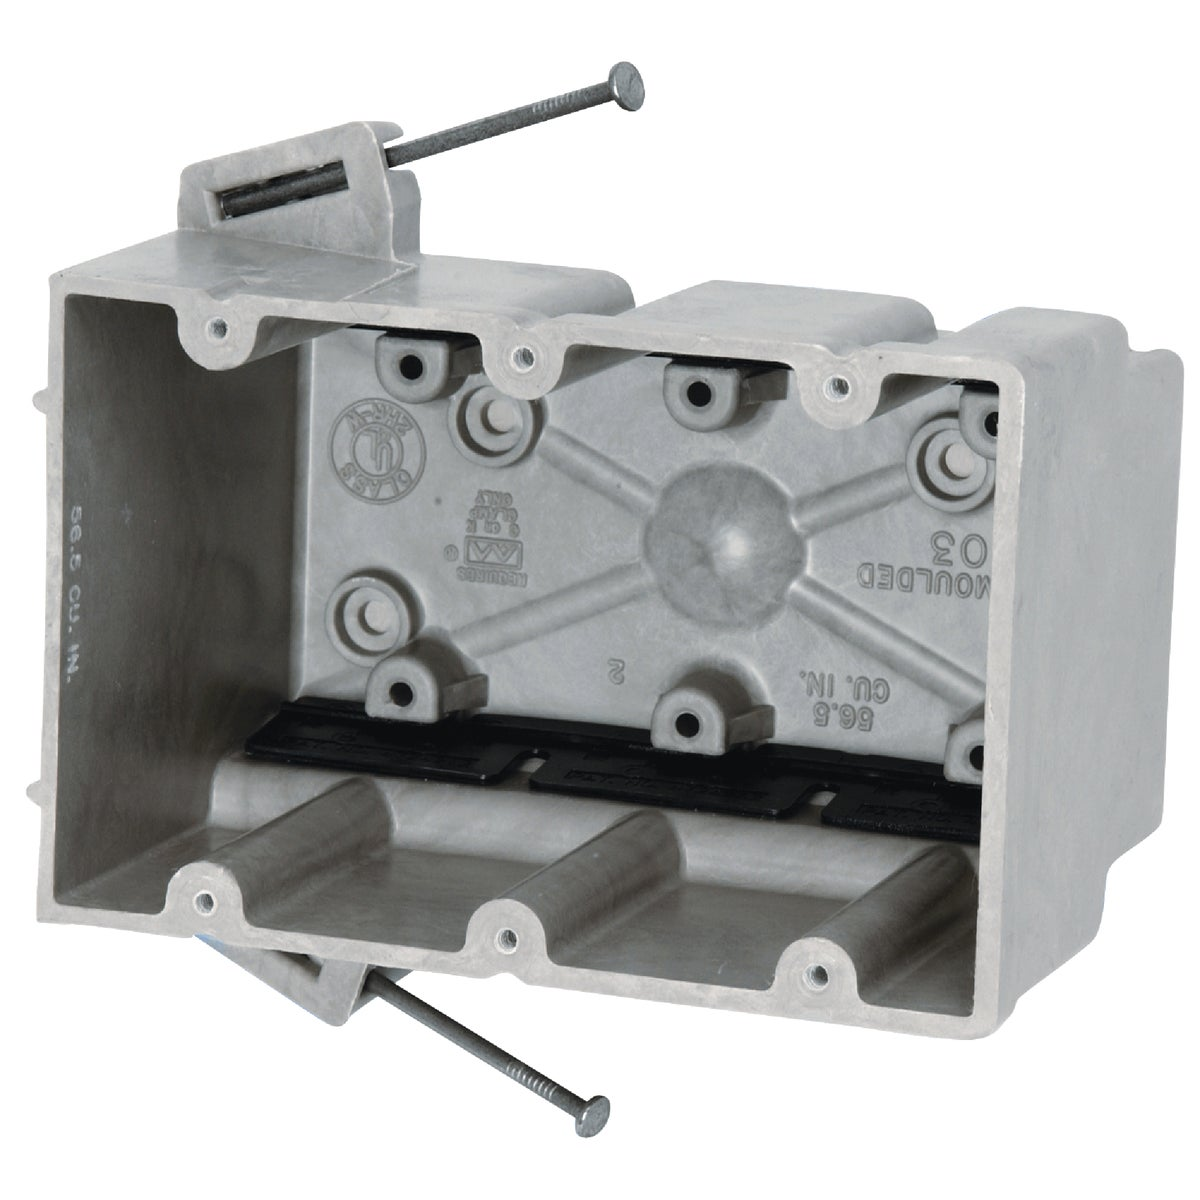 3 GANG SWITCH BOX - 3300=NK by Allied Moulded